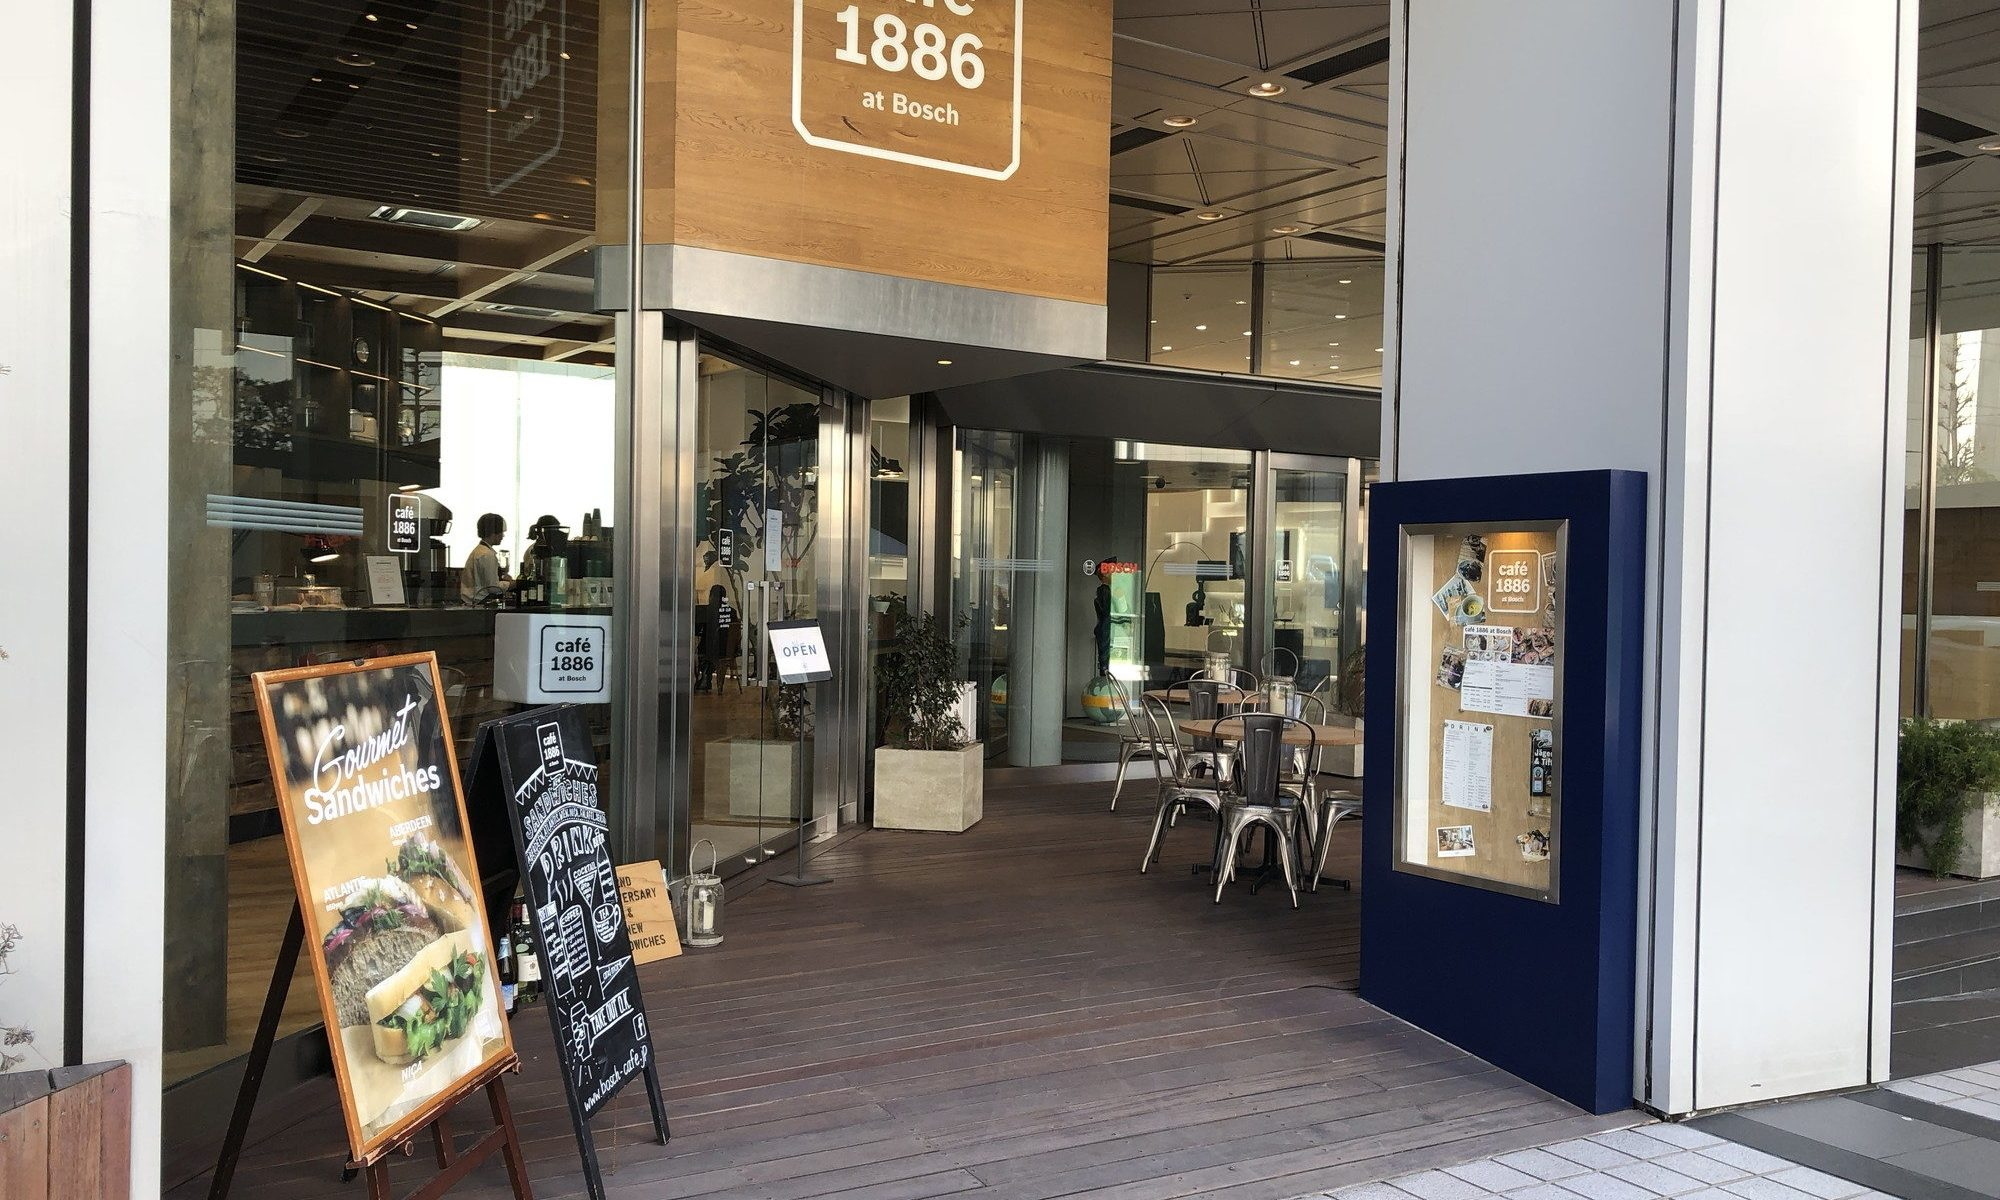 cafe 1886 at Boschの入り口